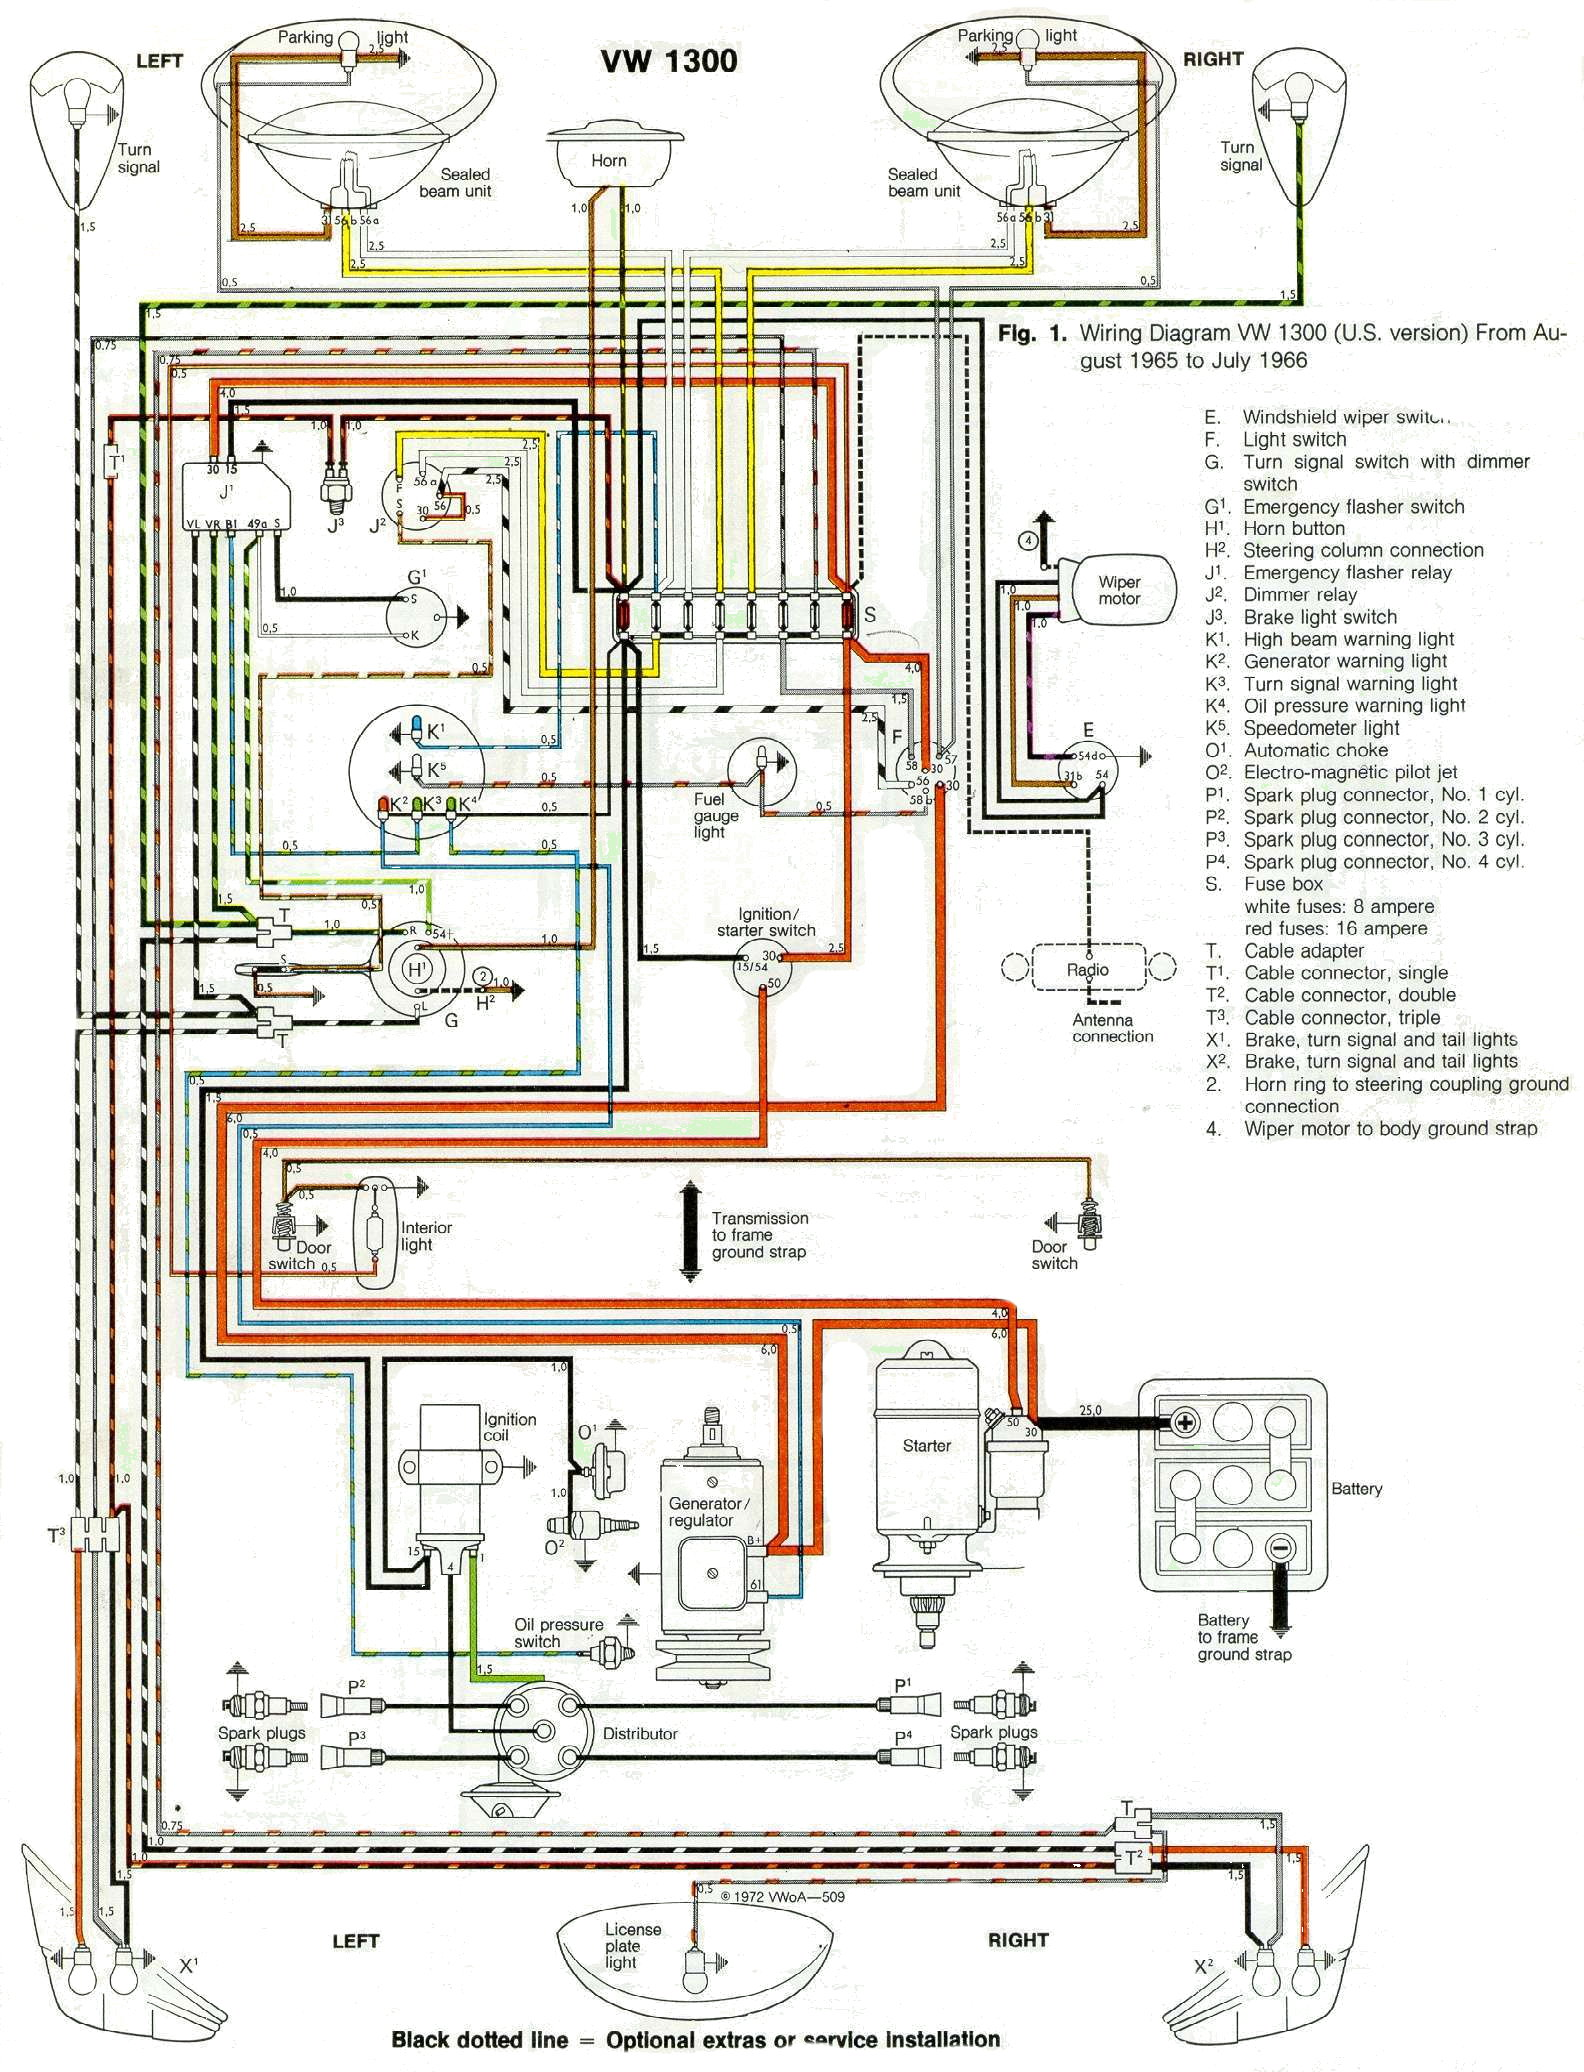 1966 Wiring 1966 wiring diagram vw bug wiring diagram at gsmx.co